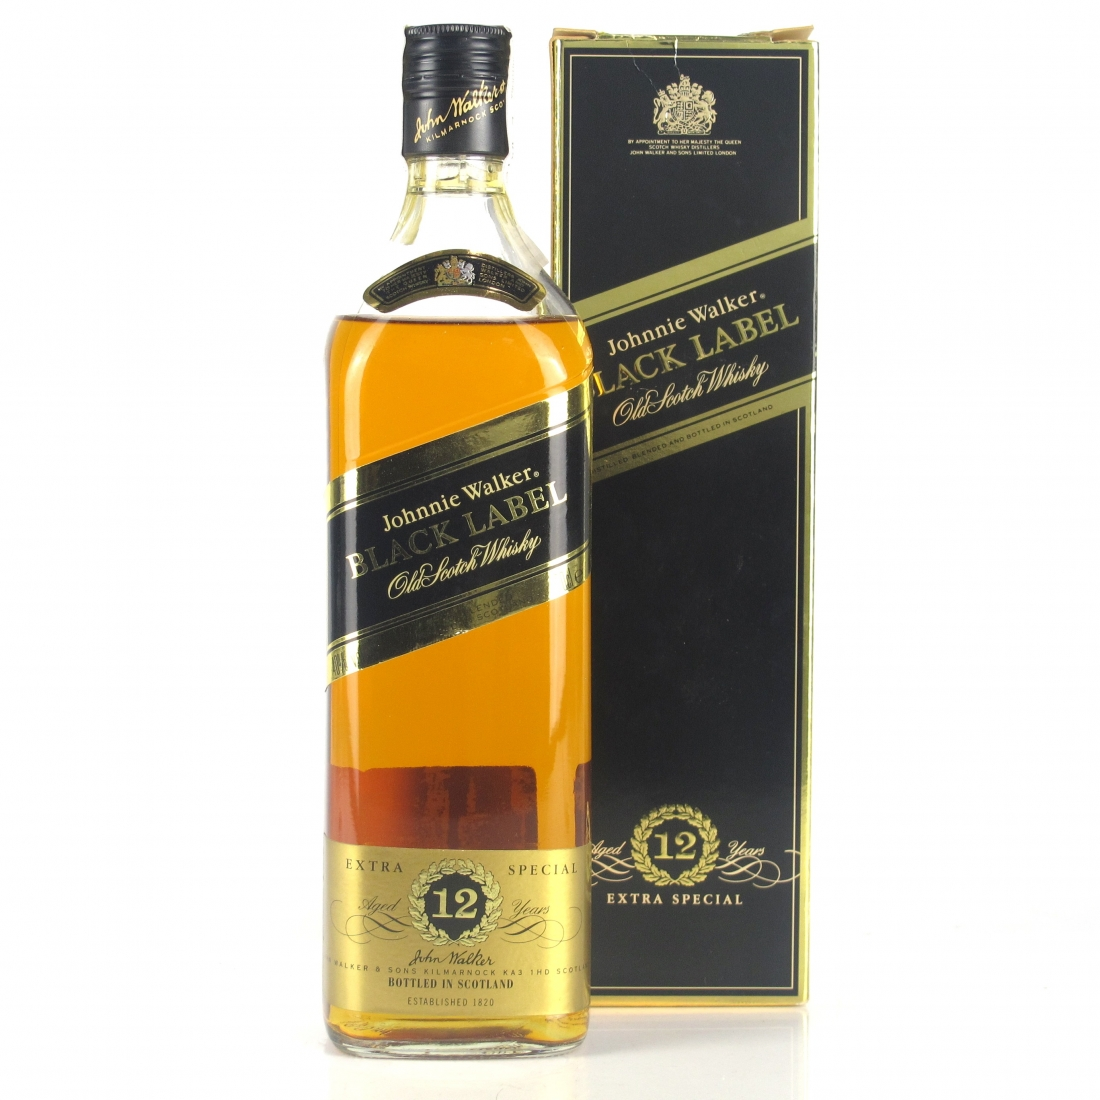 Johnnie Walker Black Label 12 Year Old